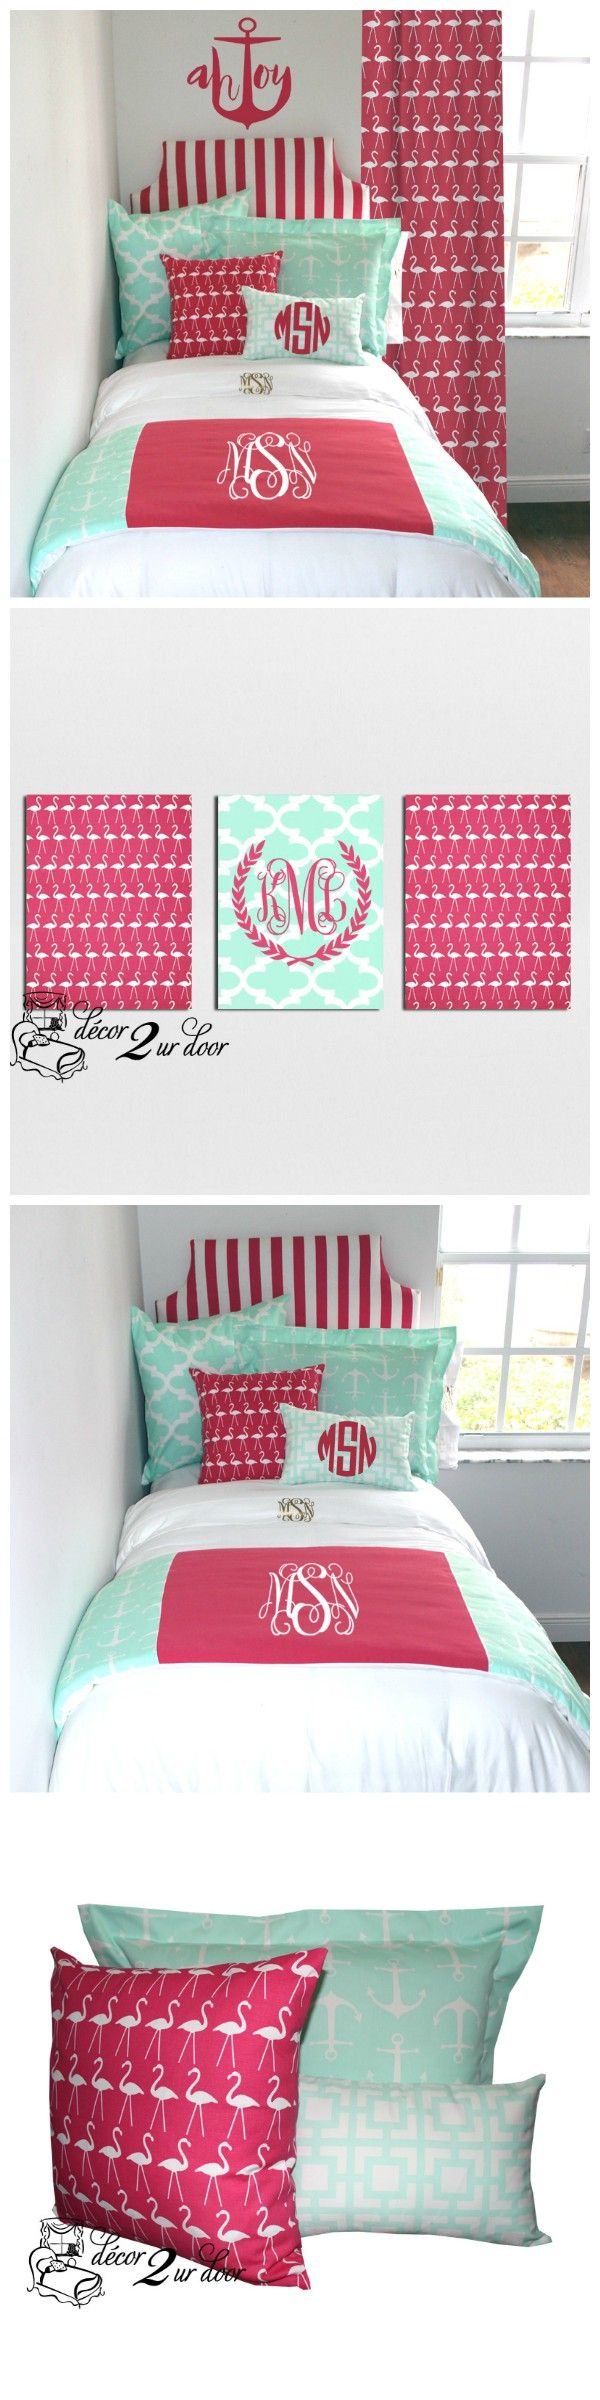 Mint and pink bedroom. Designer headboard, custom pillows, exclusive bed scarf, window panels, wall art, bed skirts, twin/queen/king duvet and custom monogramming!! Perfect for college, apartment, or teen bedding!! Designer Dorm Room Bedding. Teen room makeover. College apartment bedding and décor.